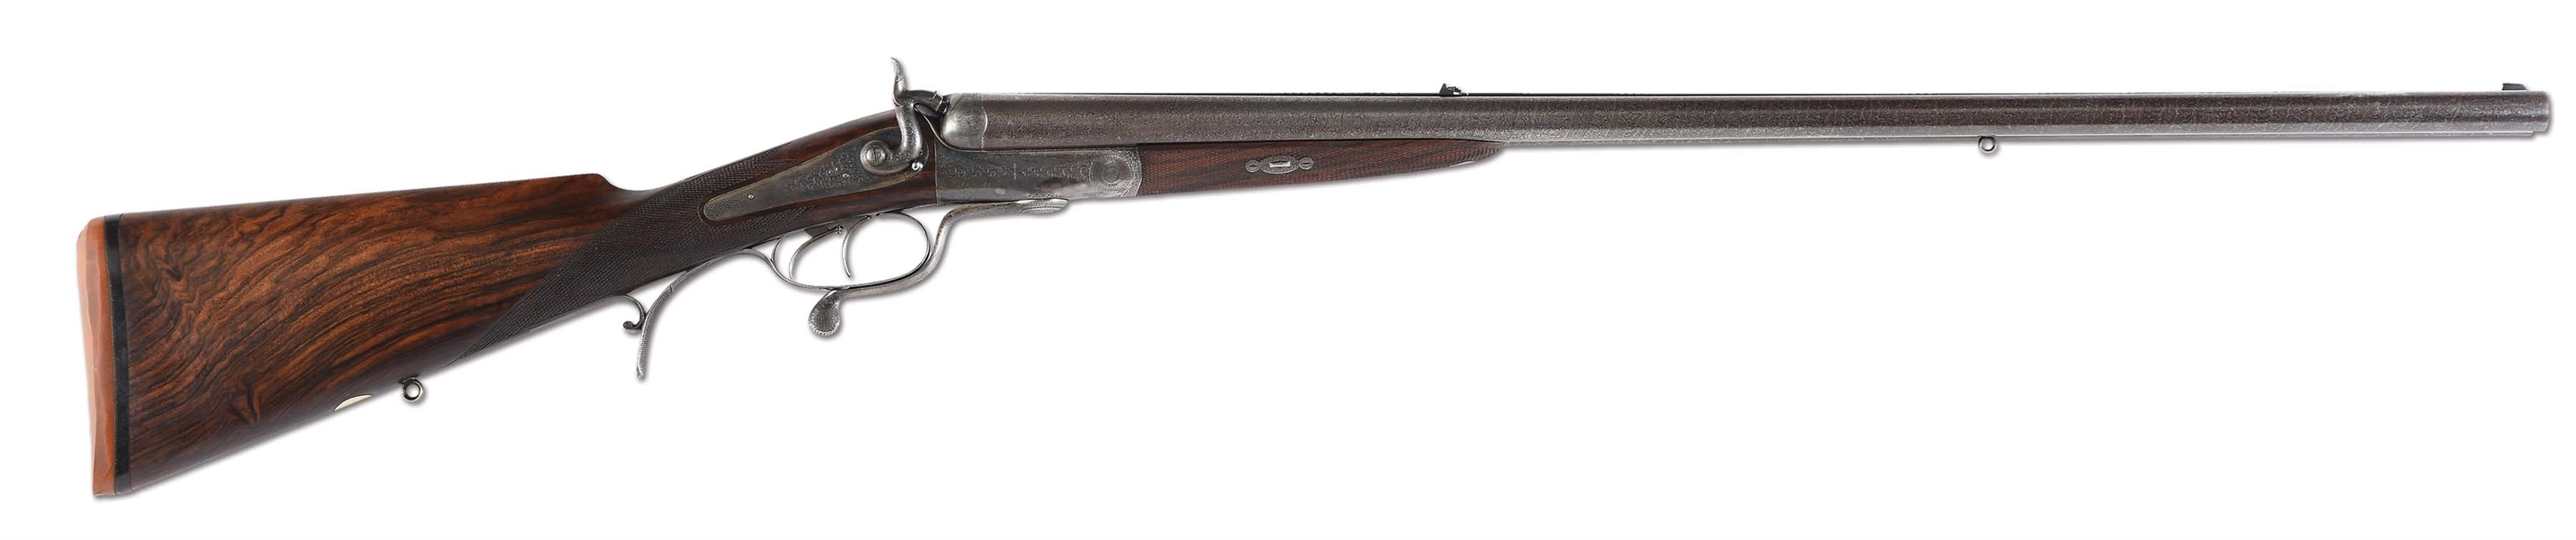 (A) SUPERB JAMES PURDEY .577 EXPRESS HAMMER DOUBLE RIFLE WITH ORIGINAL CASE AND ACCESSORIES